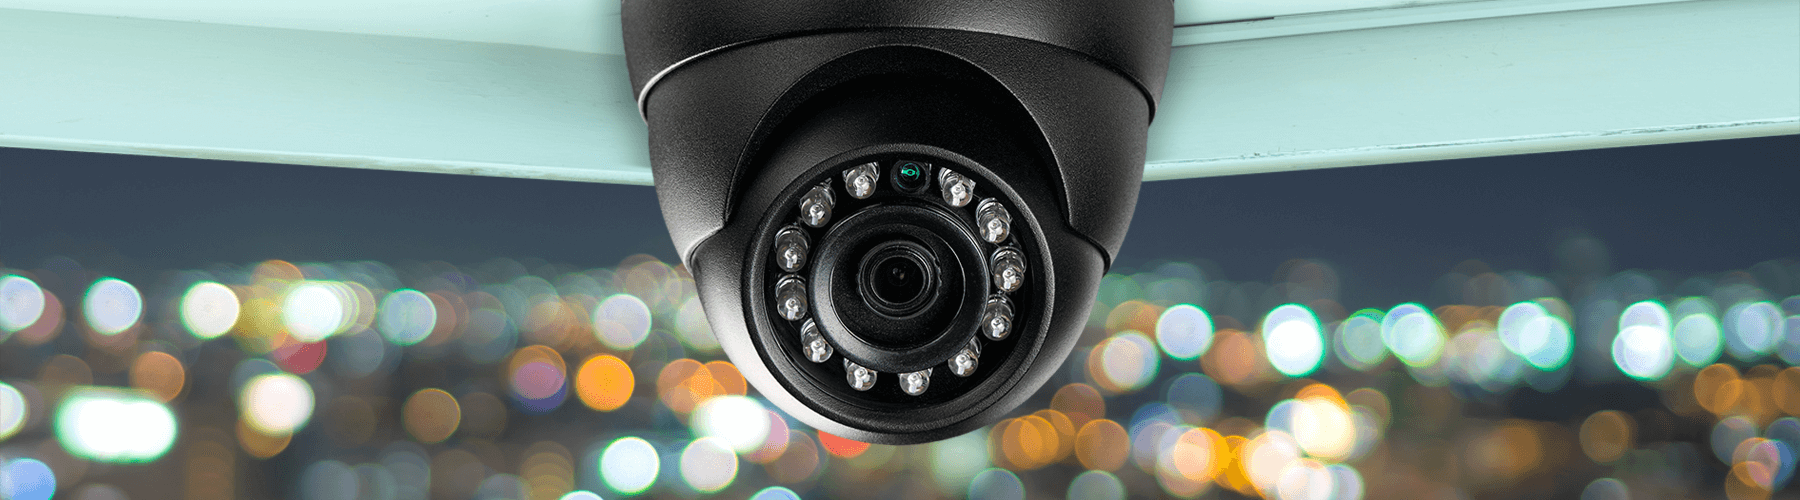 How should you maintain the home security systems?